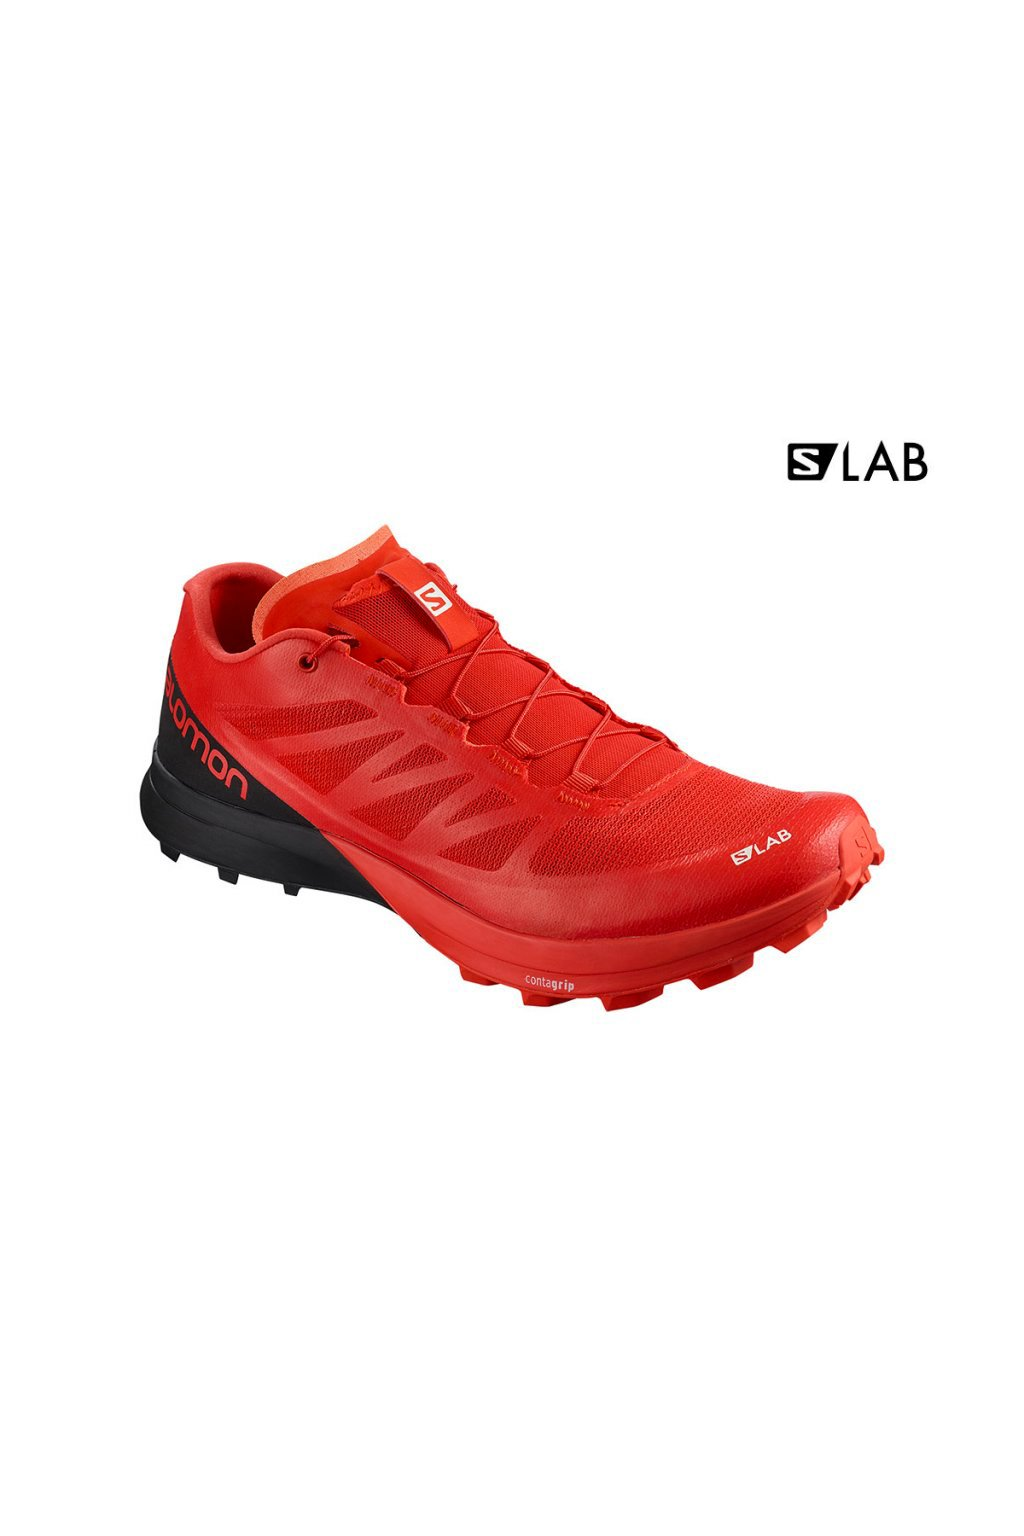 Obuv S/LAB SENSE 7 SG Racing Red/Bk/Wh